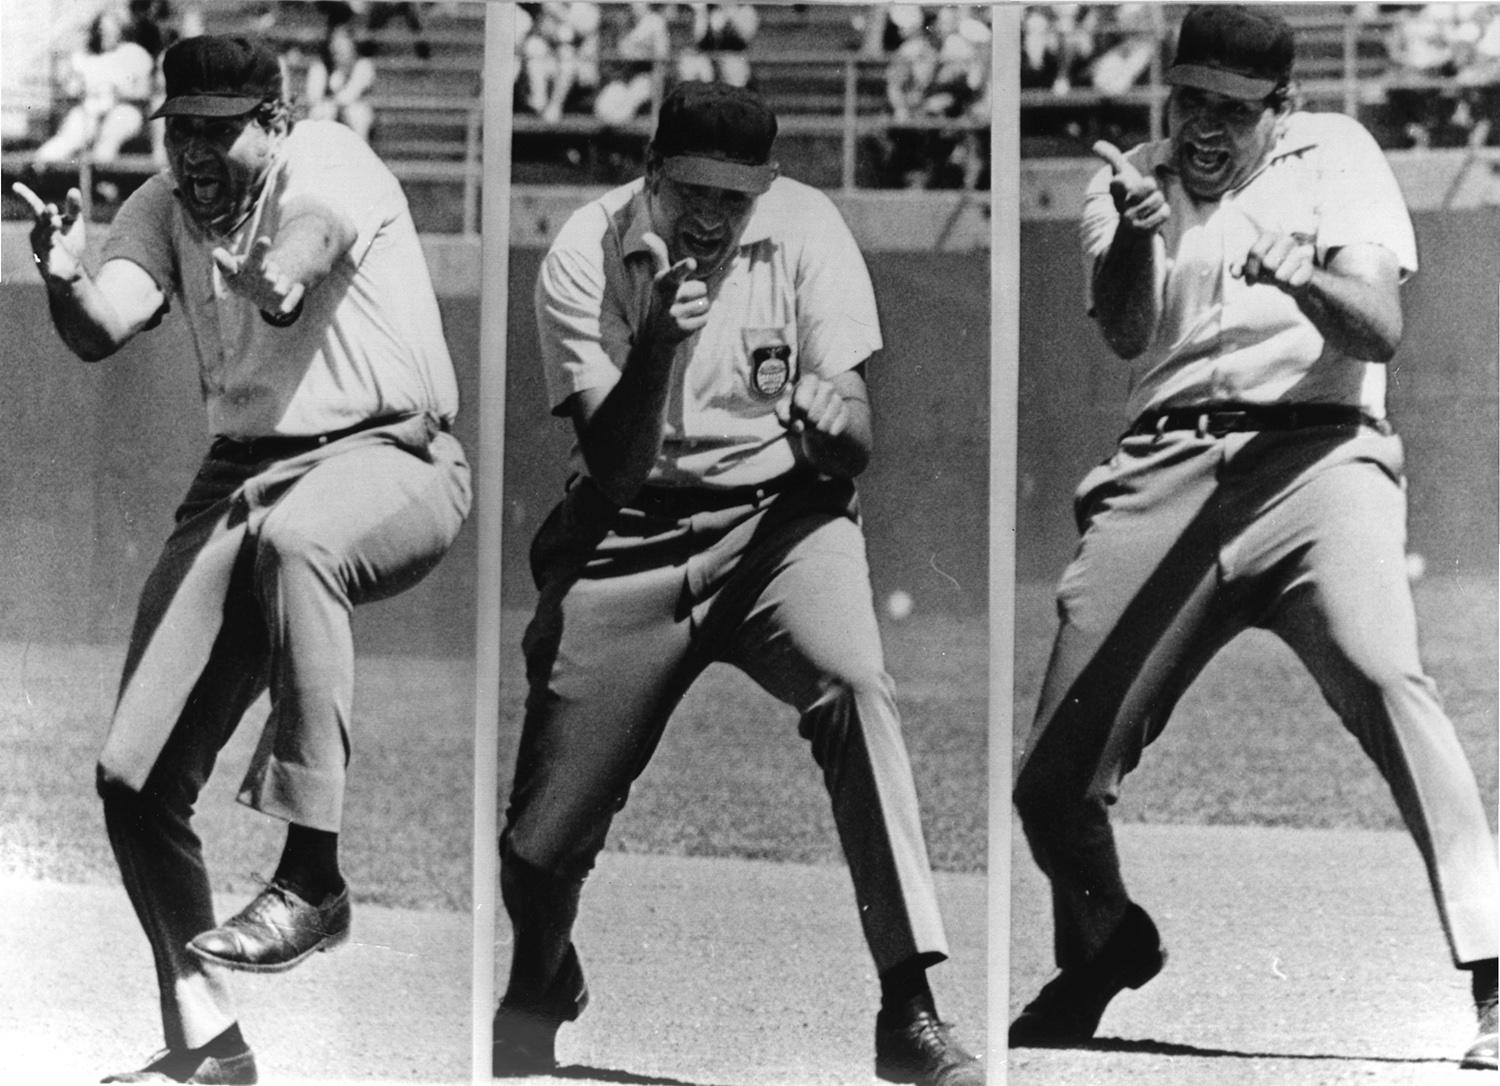 """Emmett Ashford not only inspired future generations of African-American umpires but also many umpires with flamboyant styles. Ron Luciano, who made his debut in 1969, also had a theatrical flair. <a href=""""http://collection.baseballhall.org/islandora/object/islandora%3A299447"""">PASTIME</a> (National Baseball Hall of Fame and Museum)"""